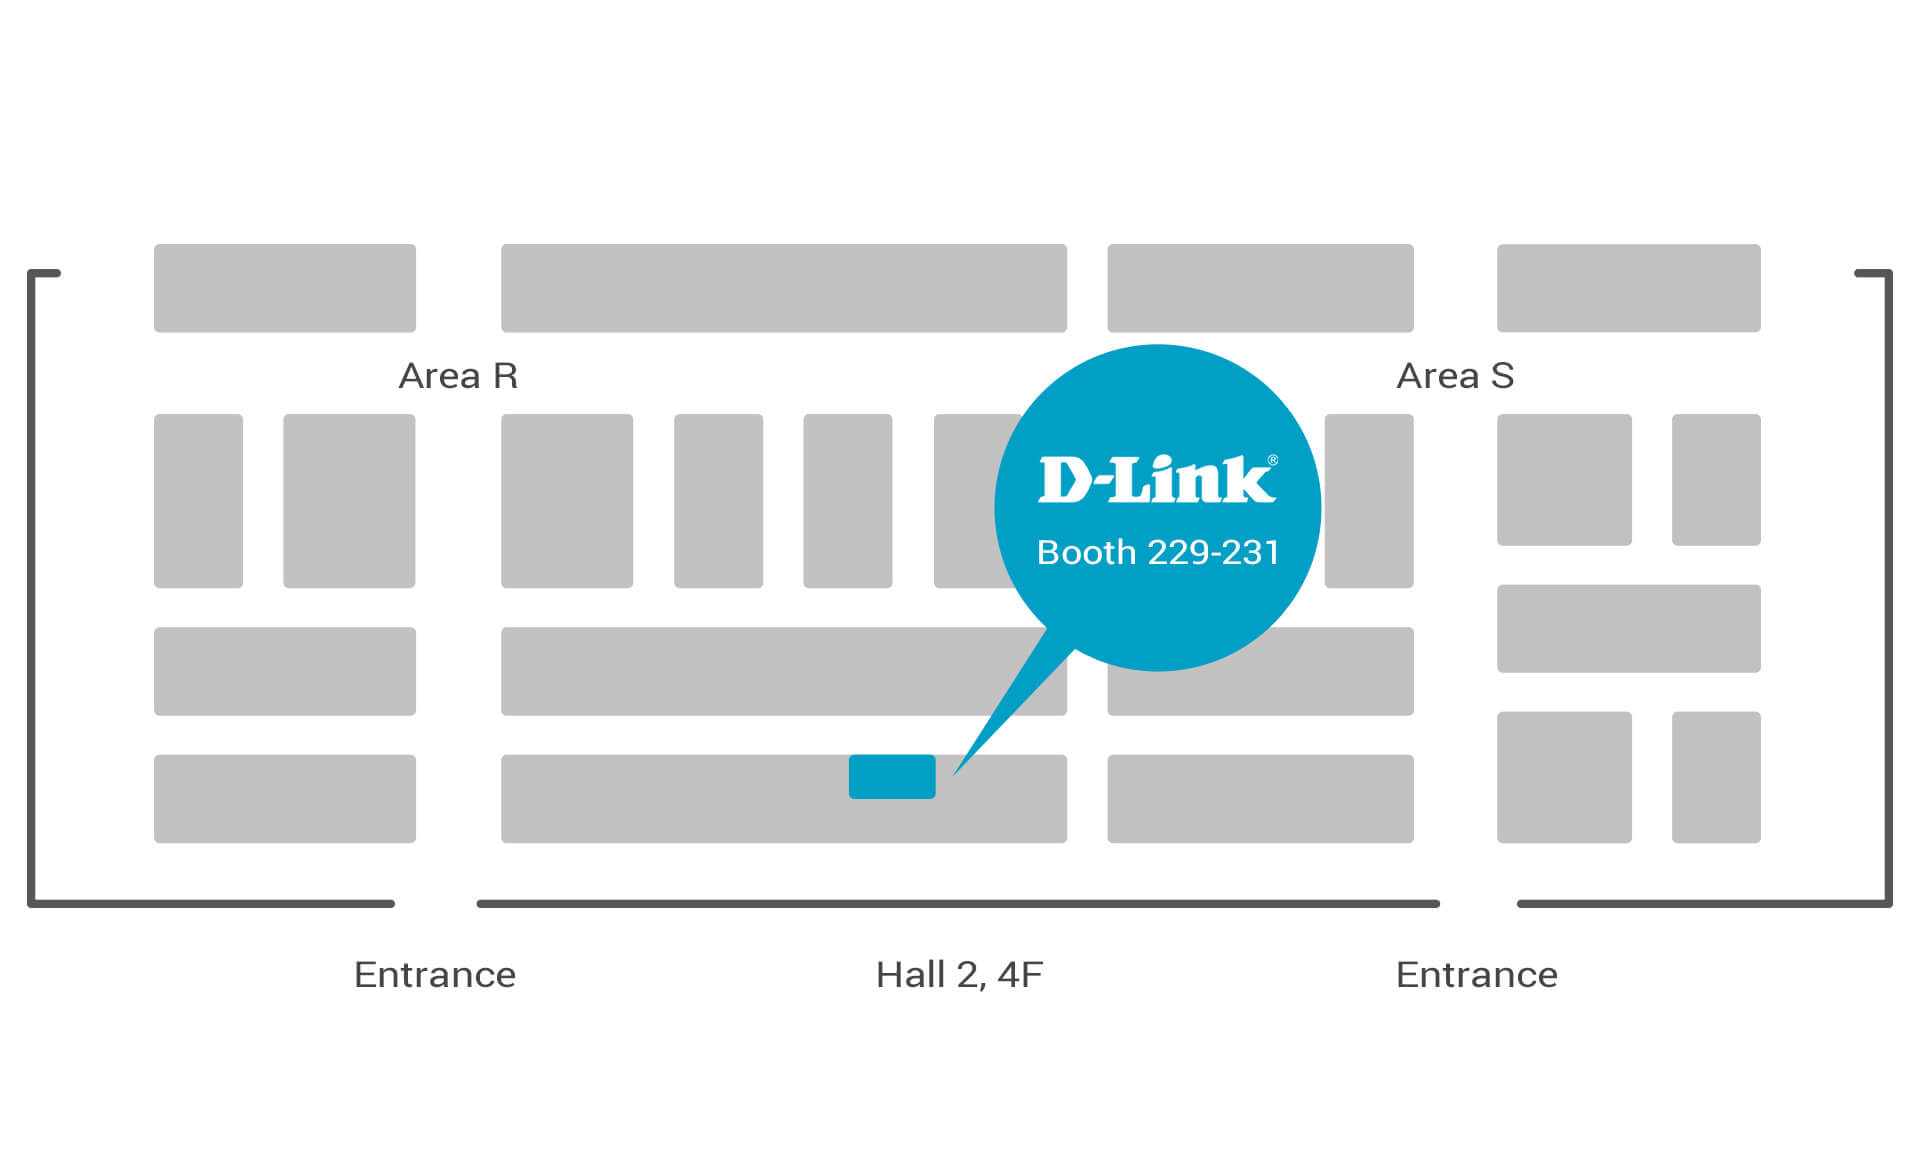 D-link booth 229 231